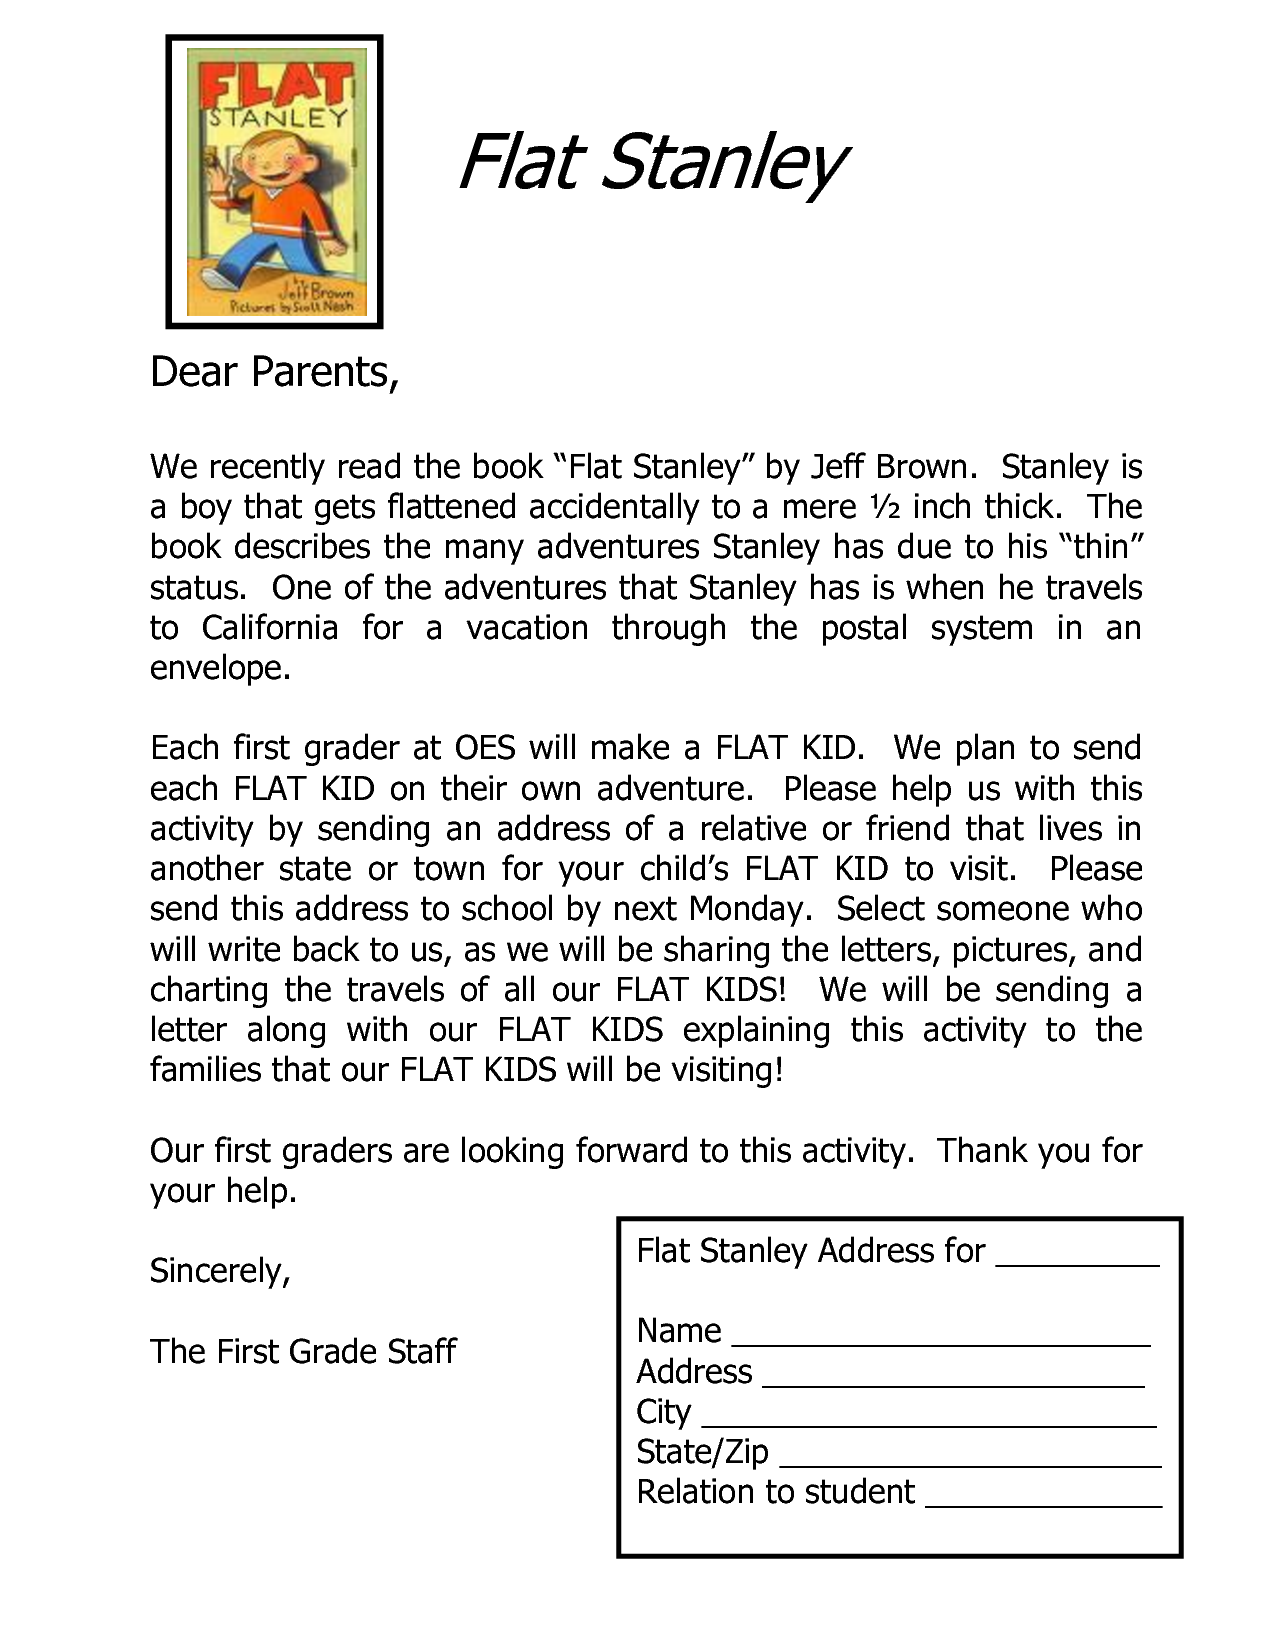 Flat Stanley Letter To Parents For Address  Google Search  Flat